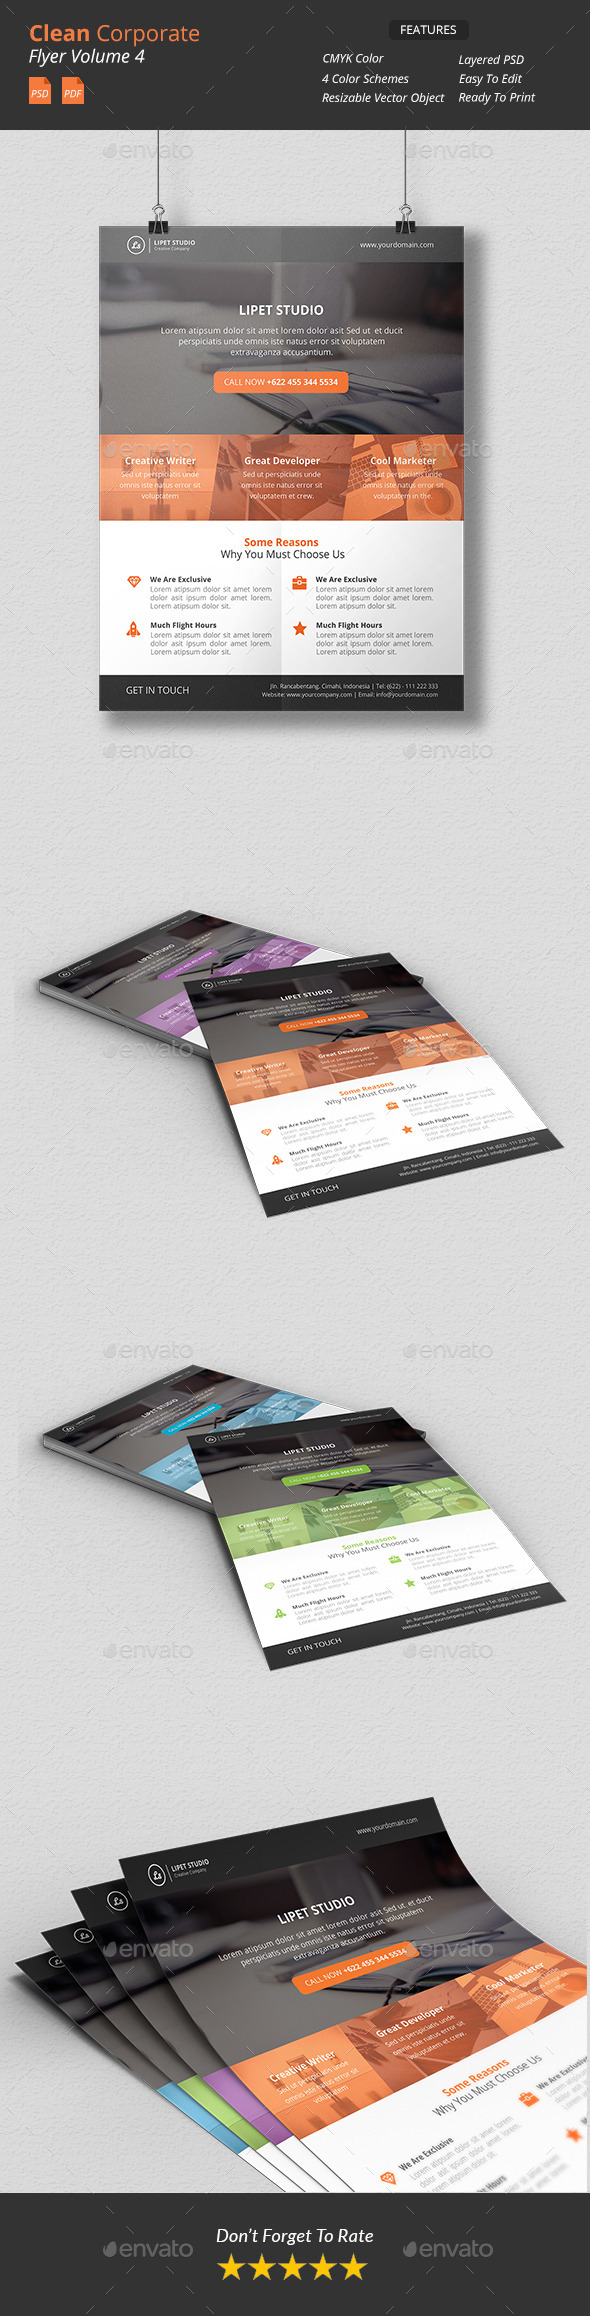 GraphicRiver Clean Corporate Flyer v4 9900773